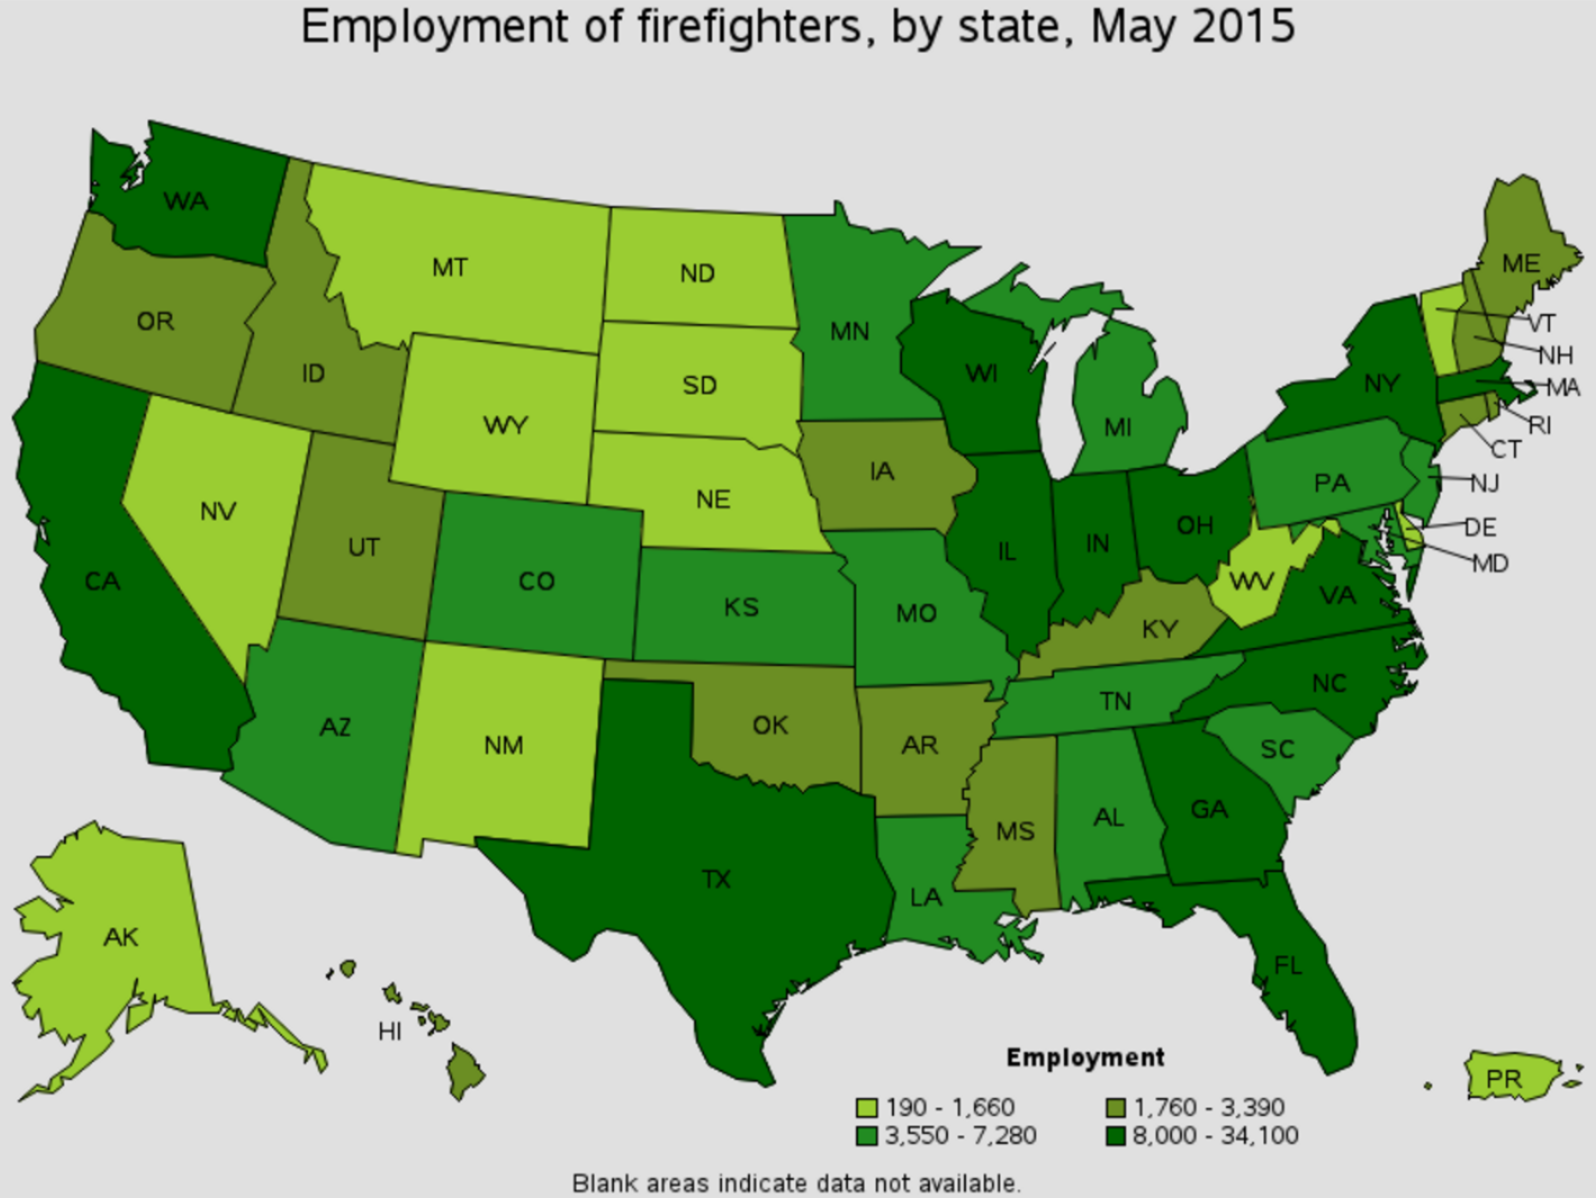 firefighter job outlook by state El Cerrito California